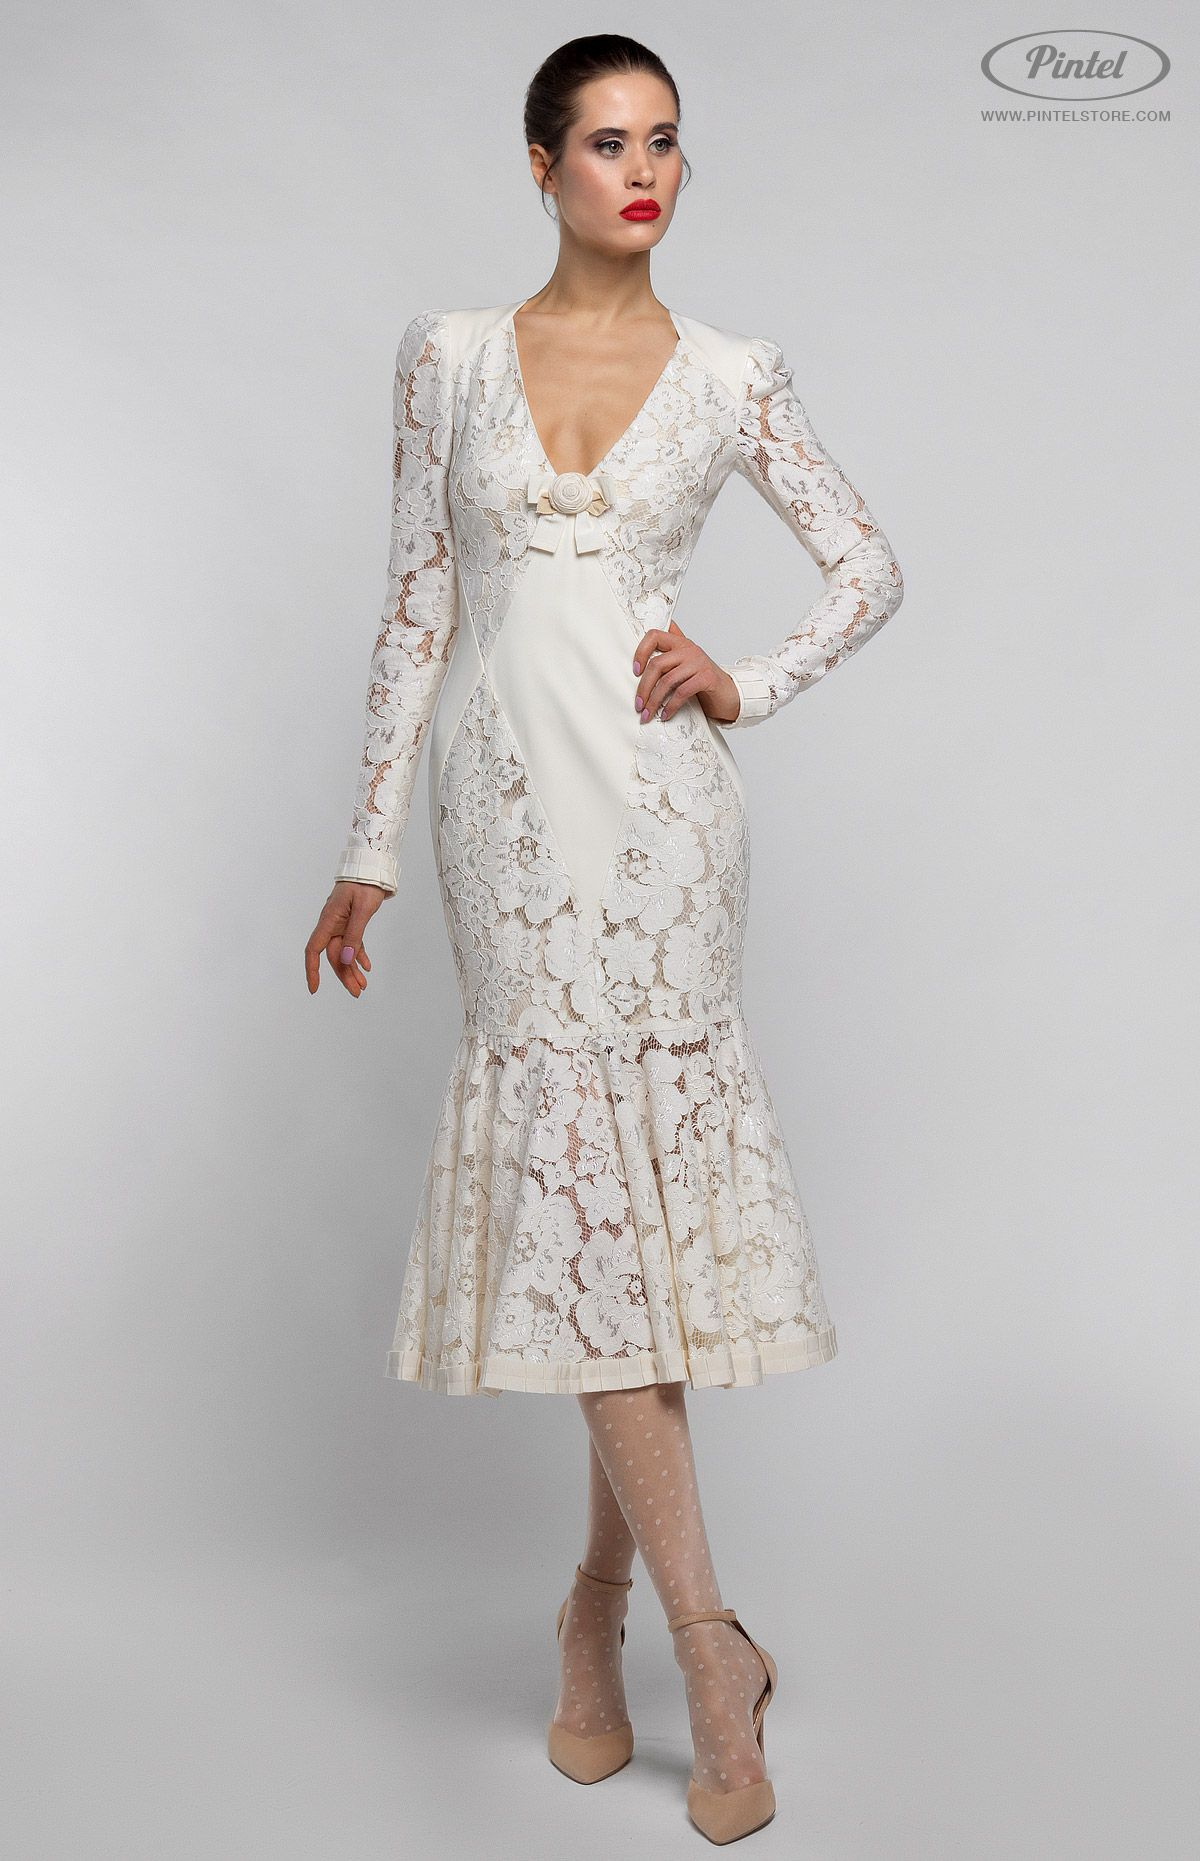 Long Sleeve Slim Fit Midi Dress In Lacy Cotton Finished With Cotton Ribbon Trim And Designer Handmade Rose Decoration W Maxi Dress Cotton Dresses Nice Dresses [ 1861 x 1200 Pixel ]